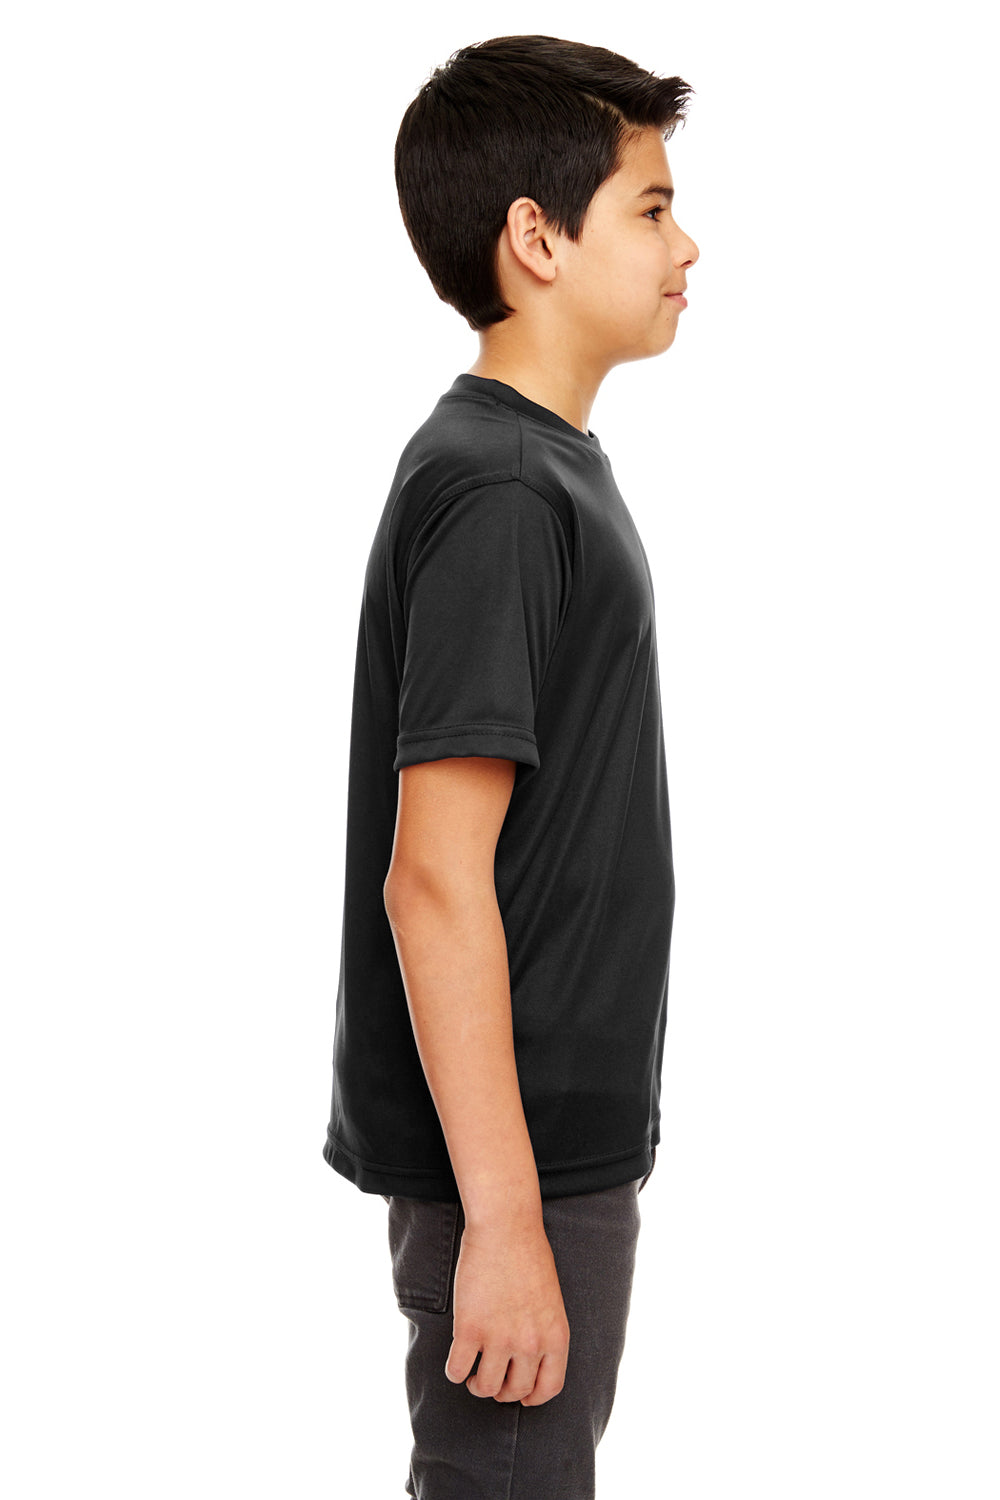 UltraClub 8620Y Youth Cool & Dry Performance Moisture Wicking Short Sleeve Crewneck T-Shirt Black Side